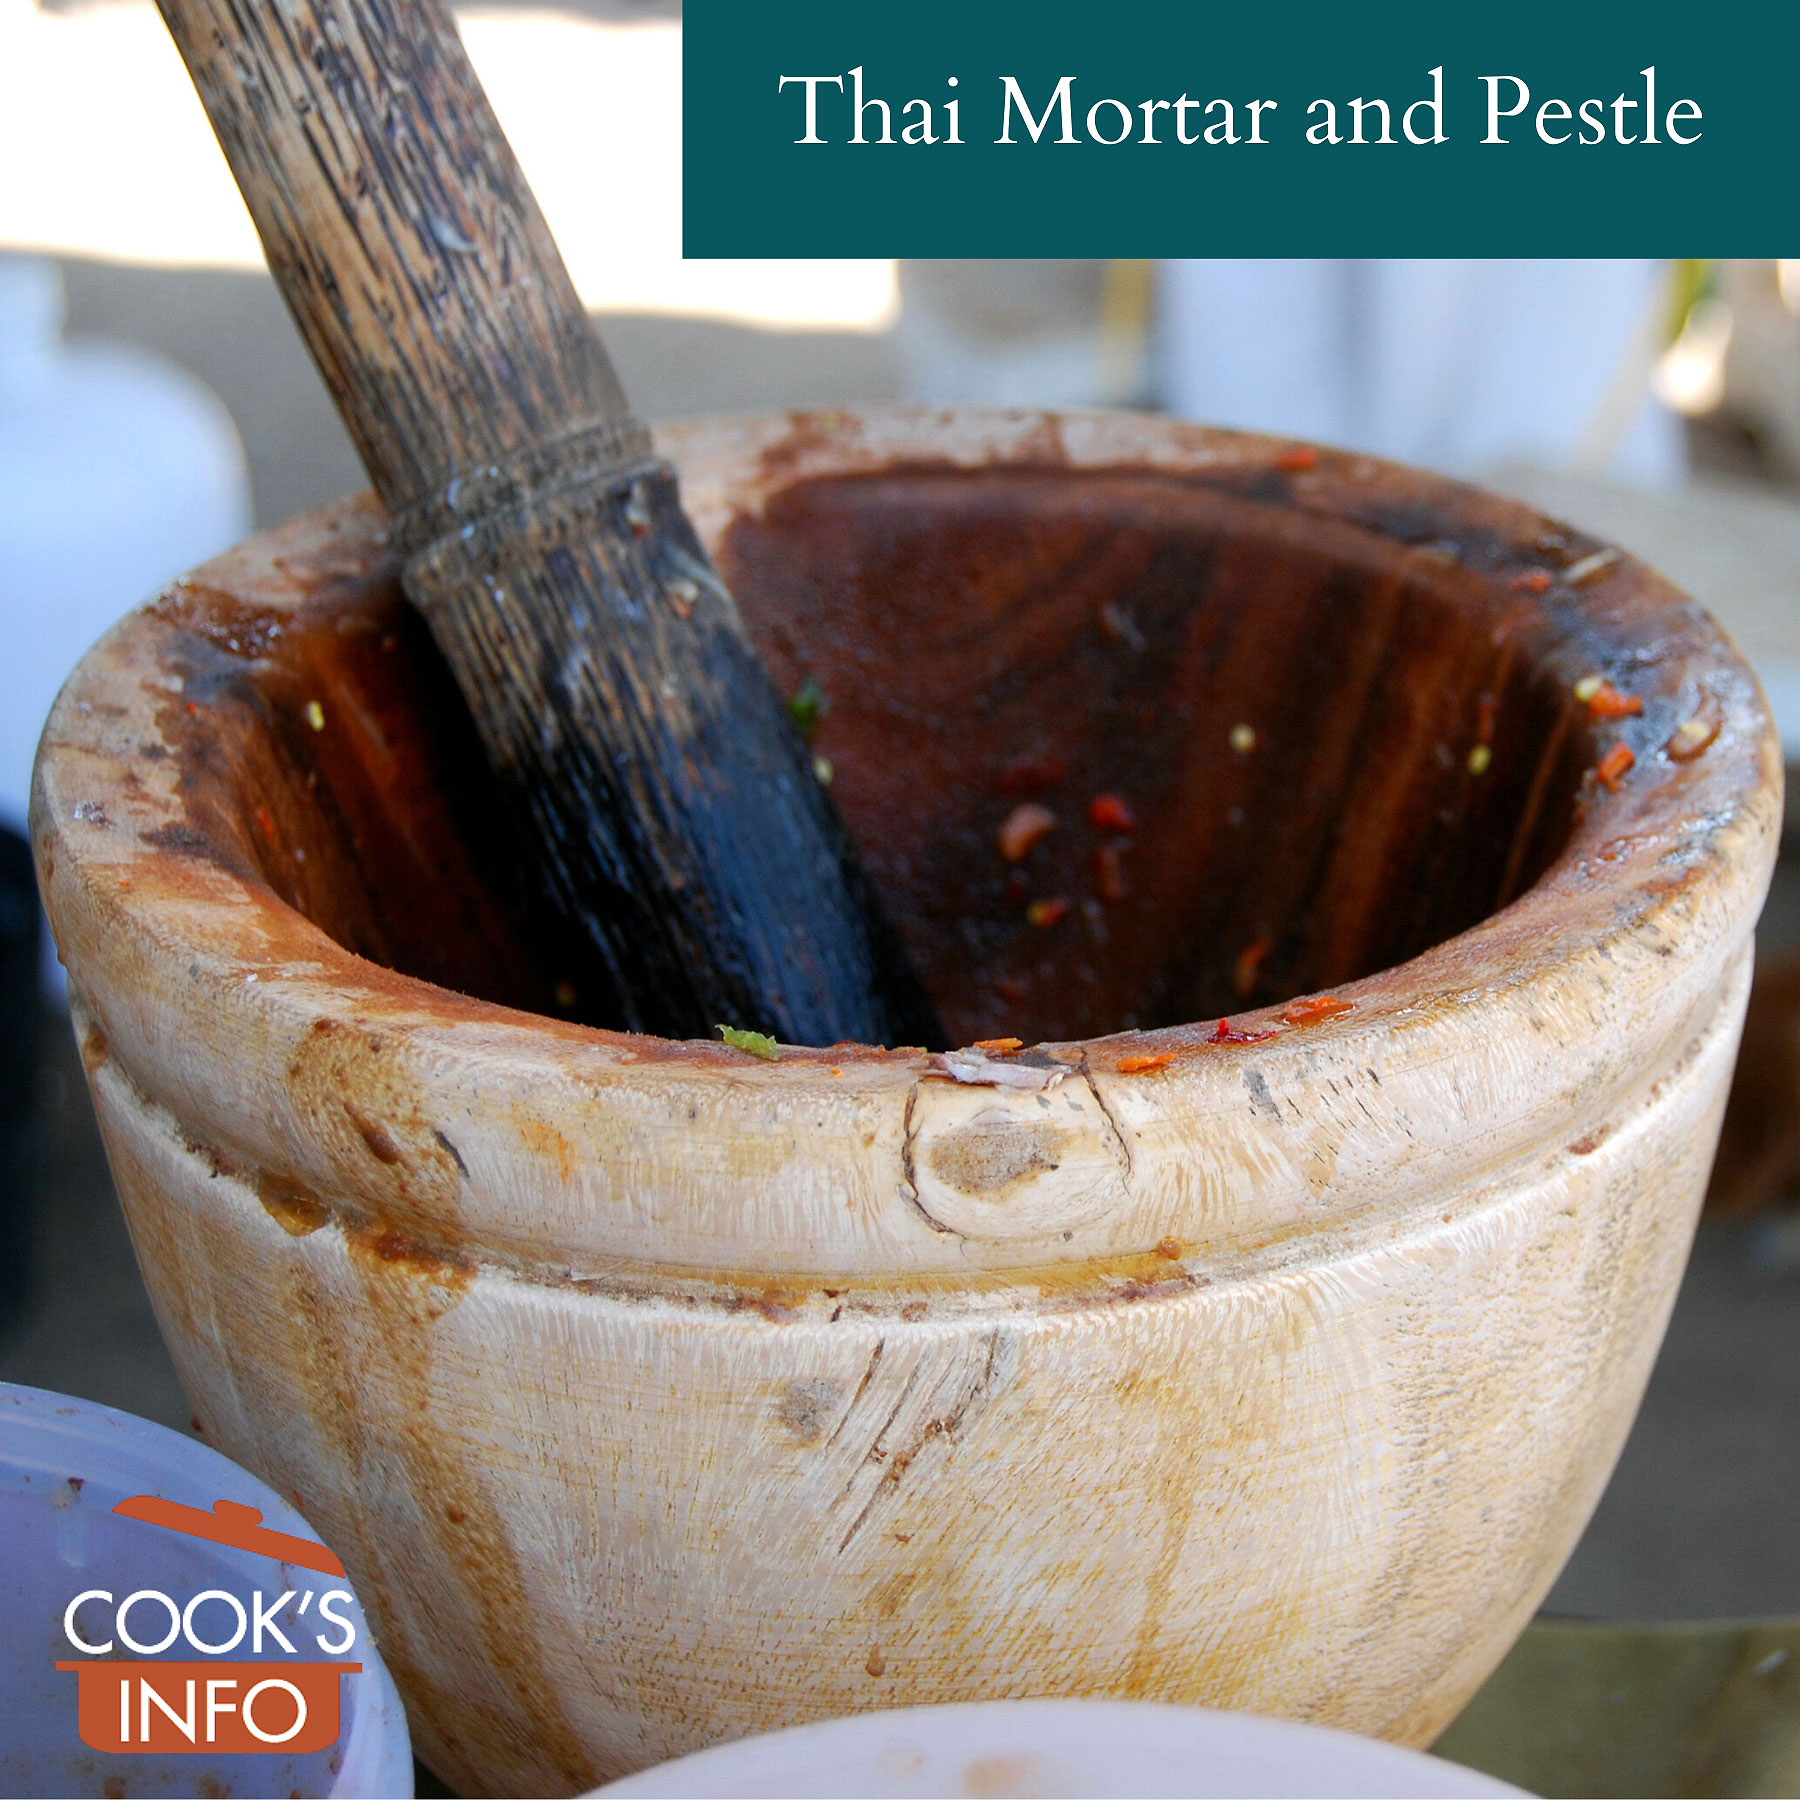 Wooden Thai mortar and pestle